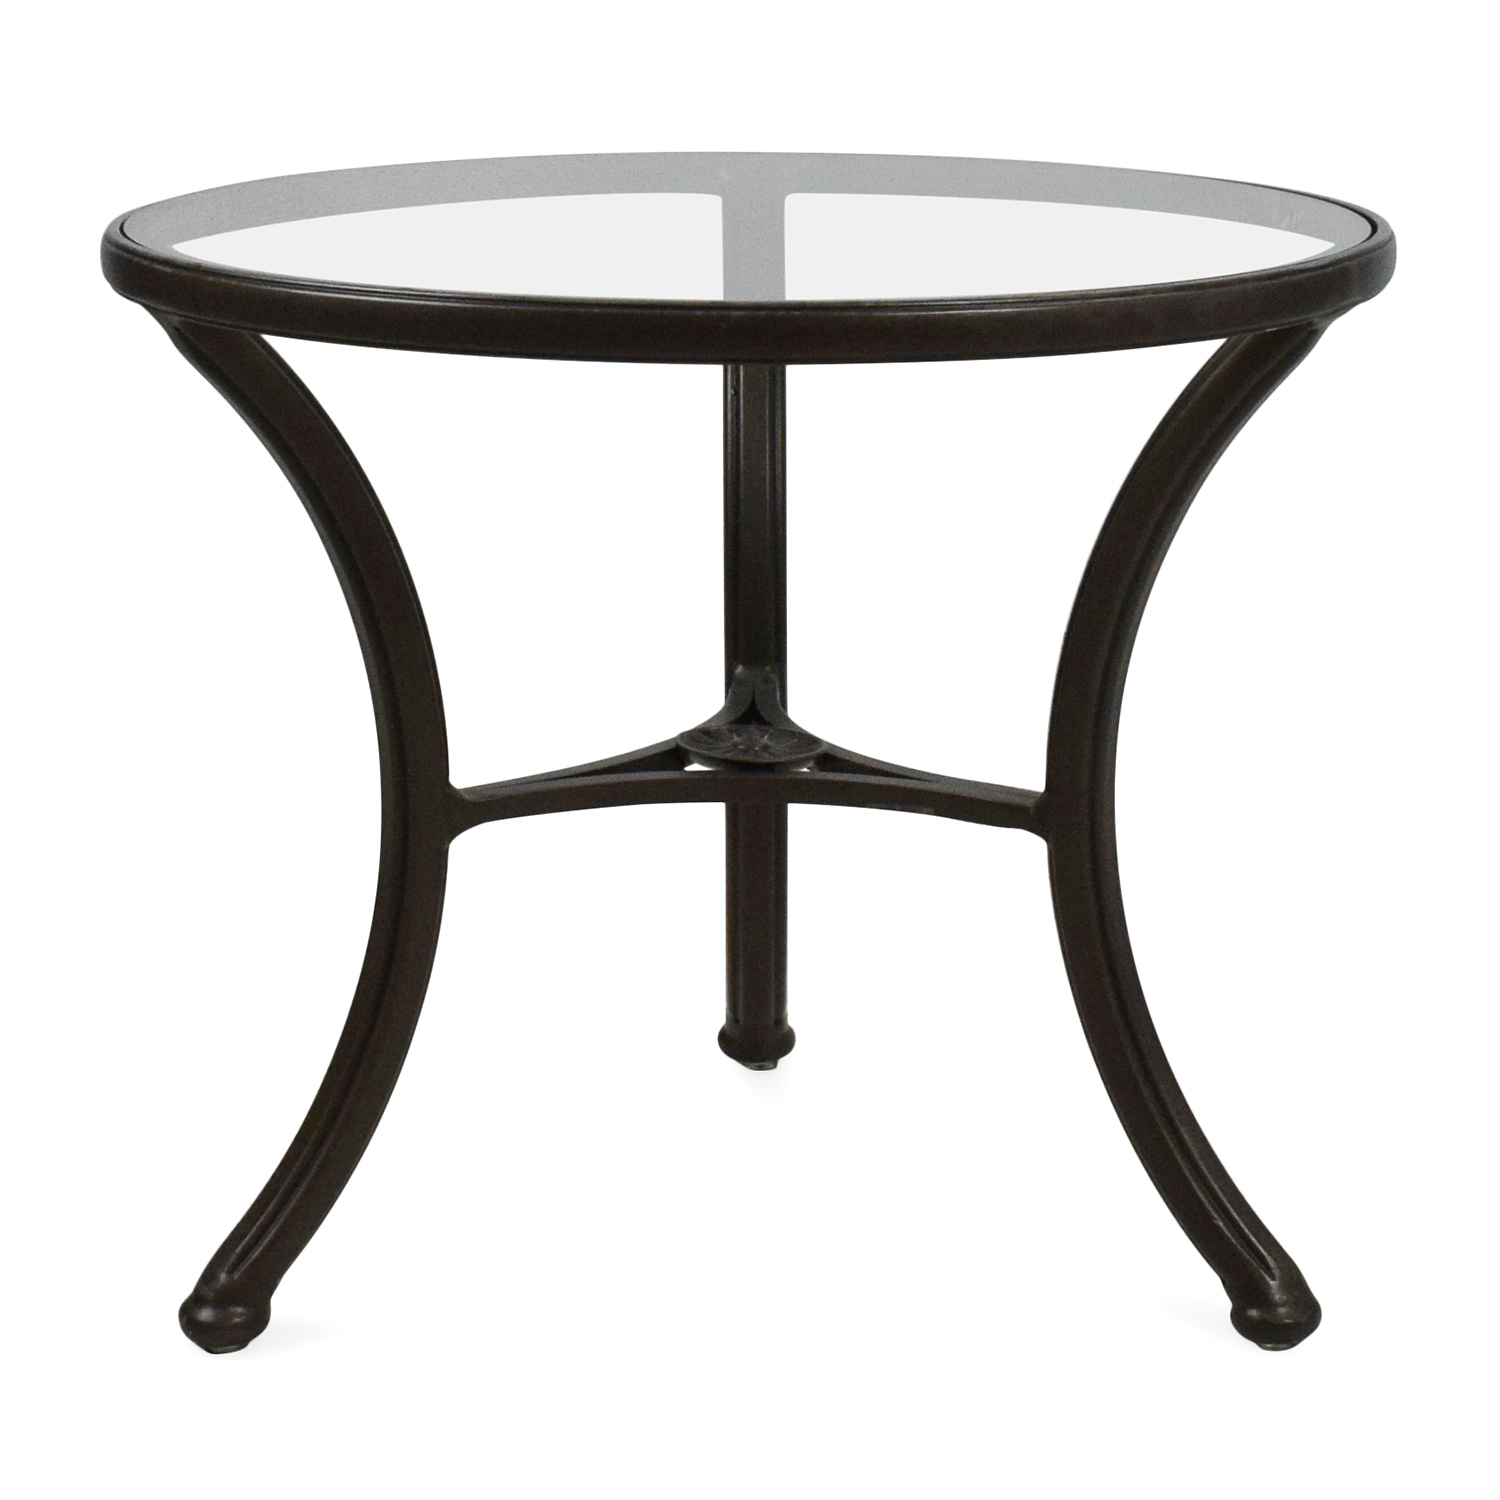 Ethan Allen Ethan Allen Glass Side Table coupon